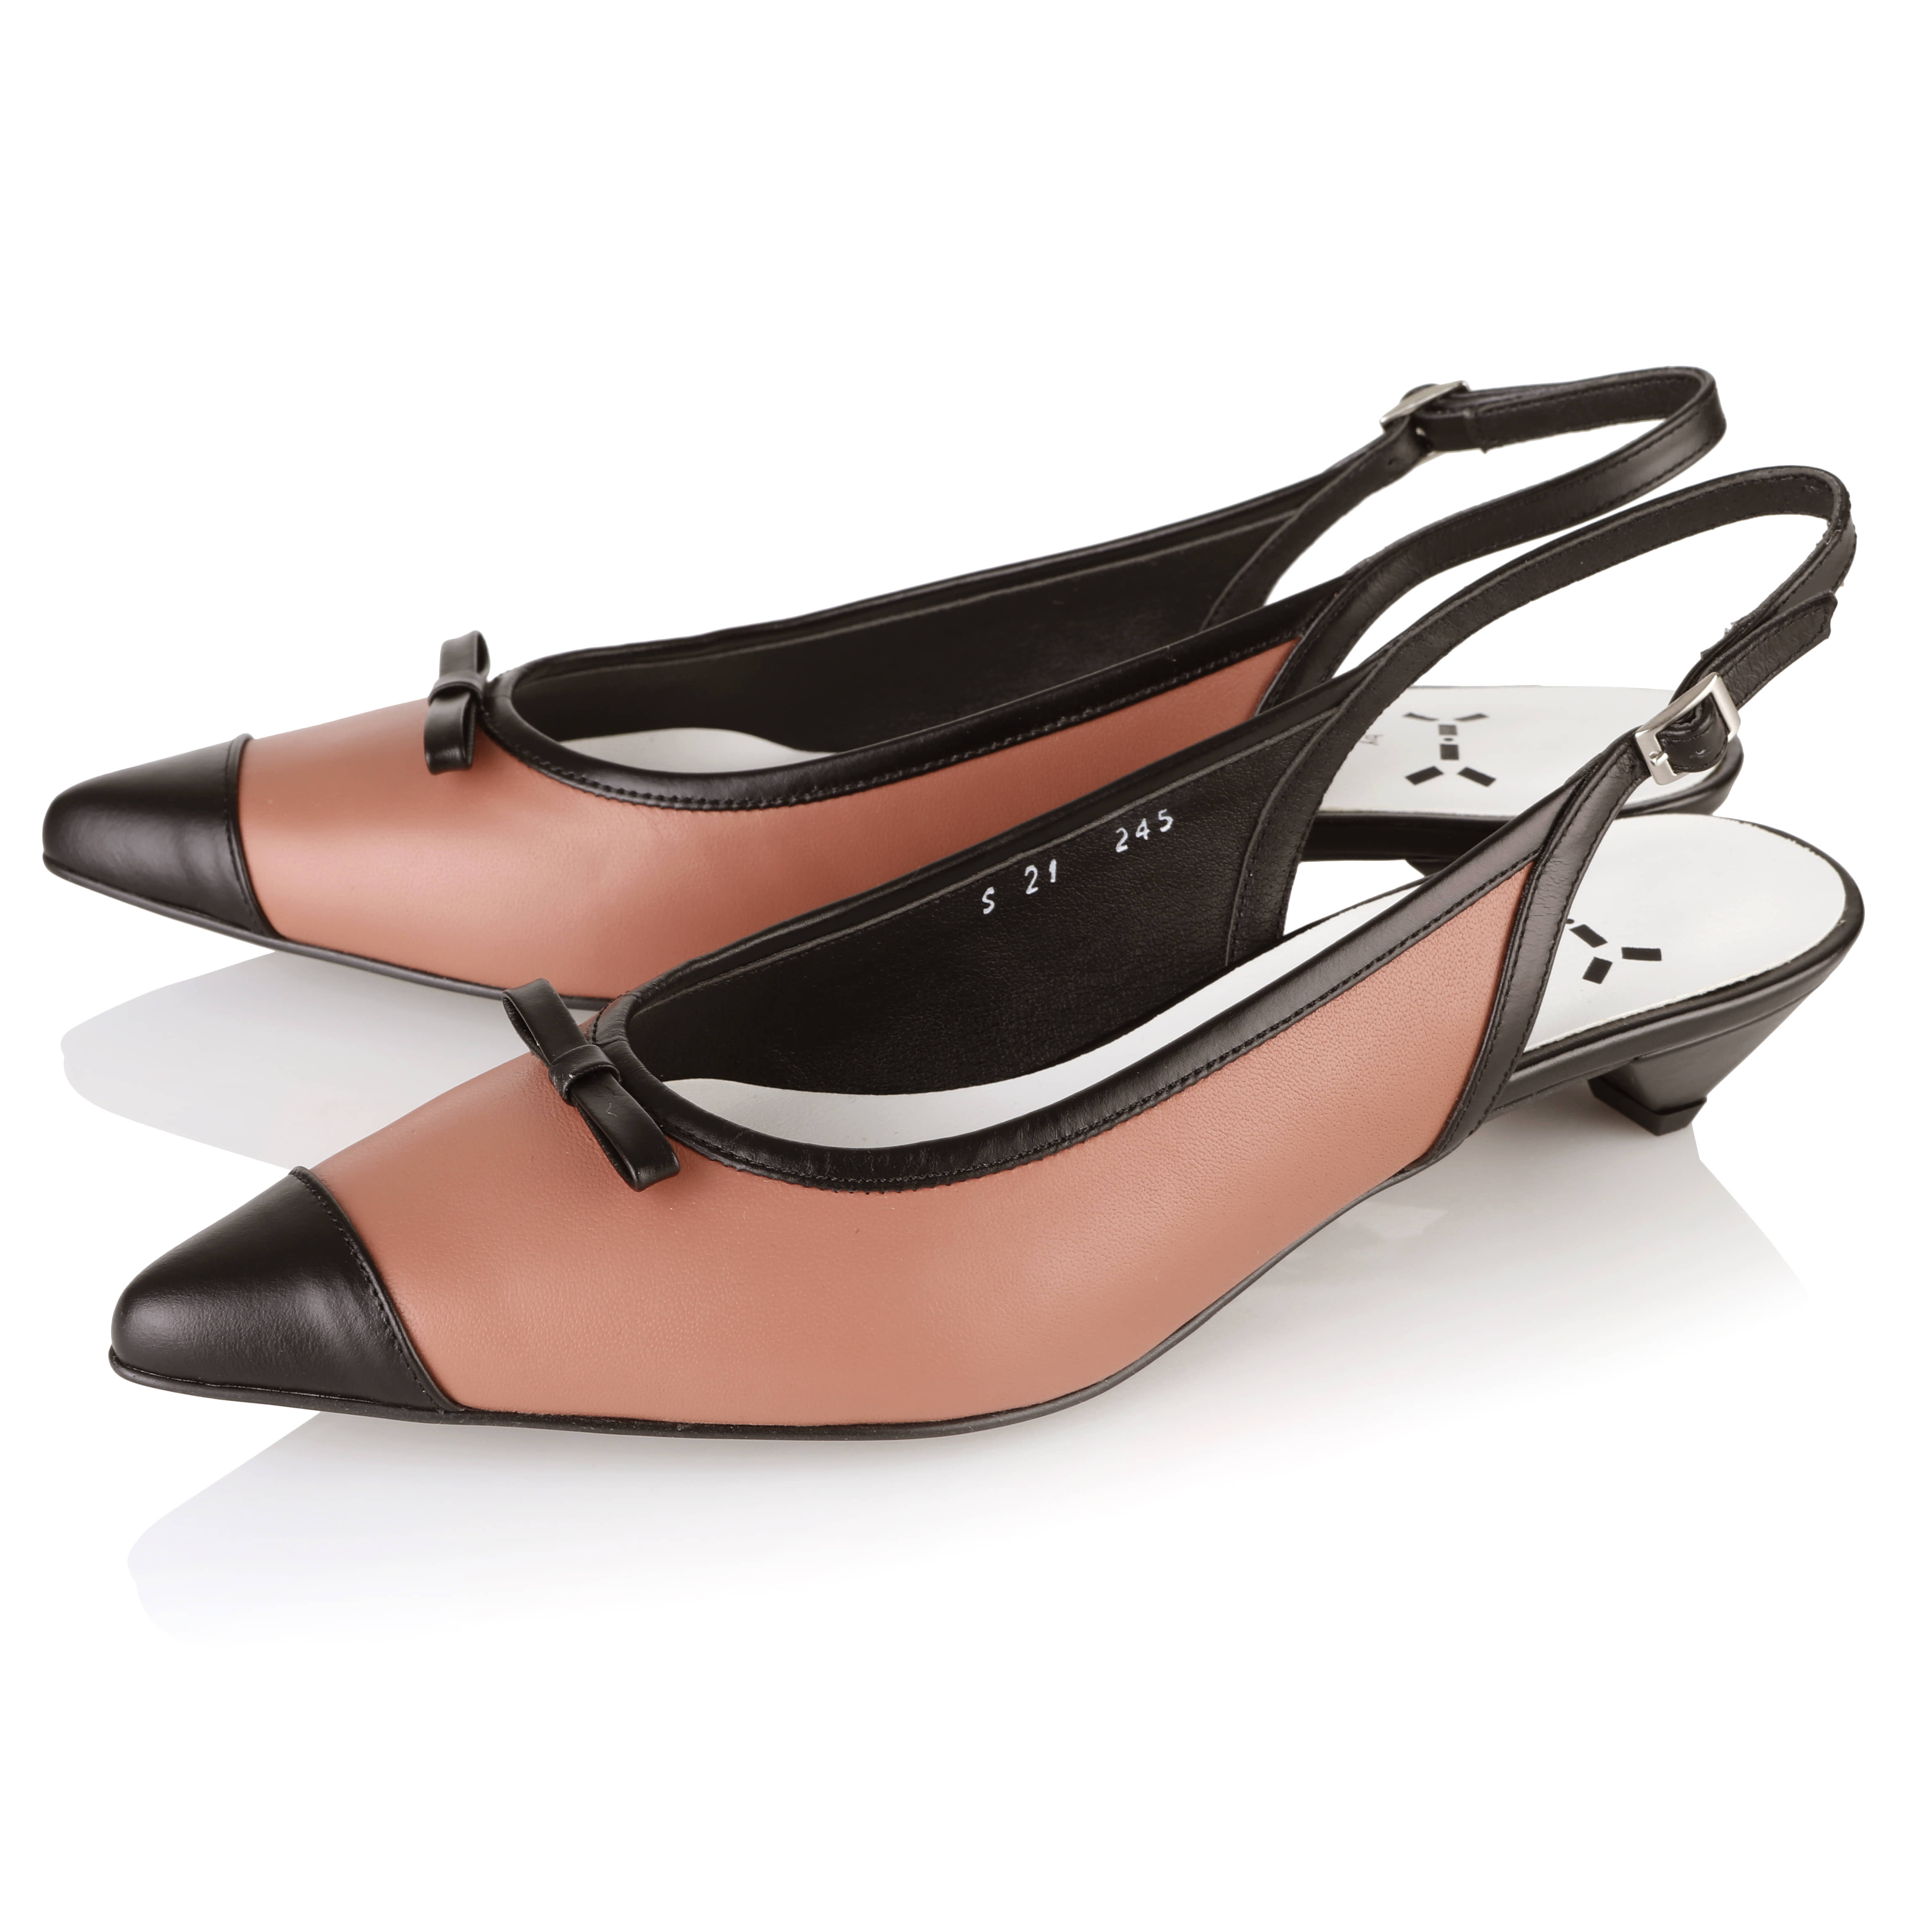 Dazzle Scent Flat Sling-back 3cm / YY8S-S21 / Rosy + Black